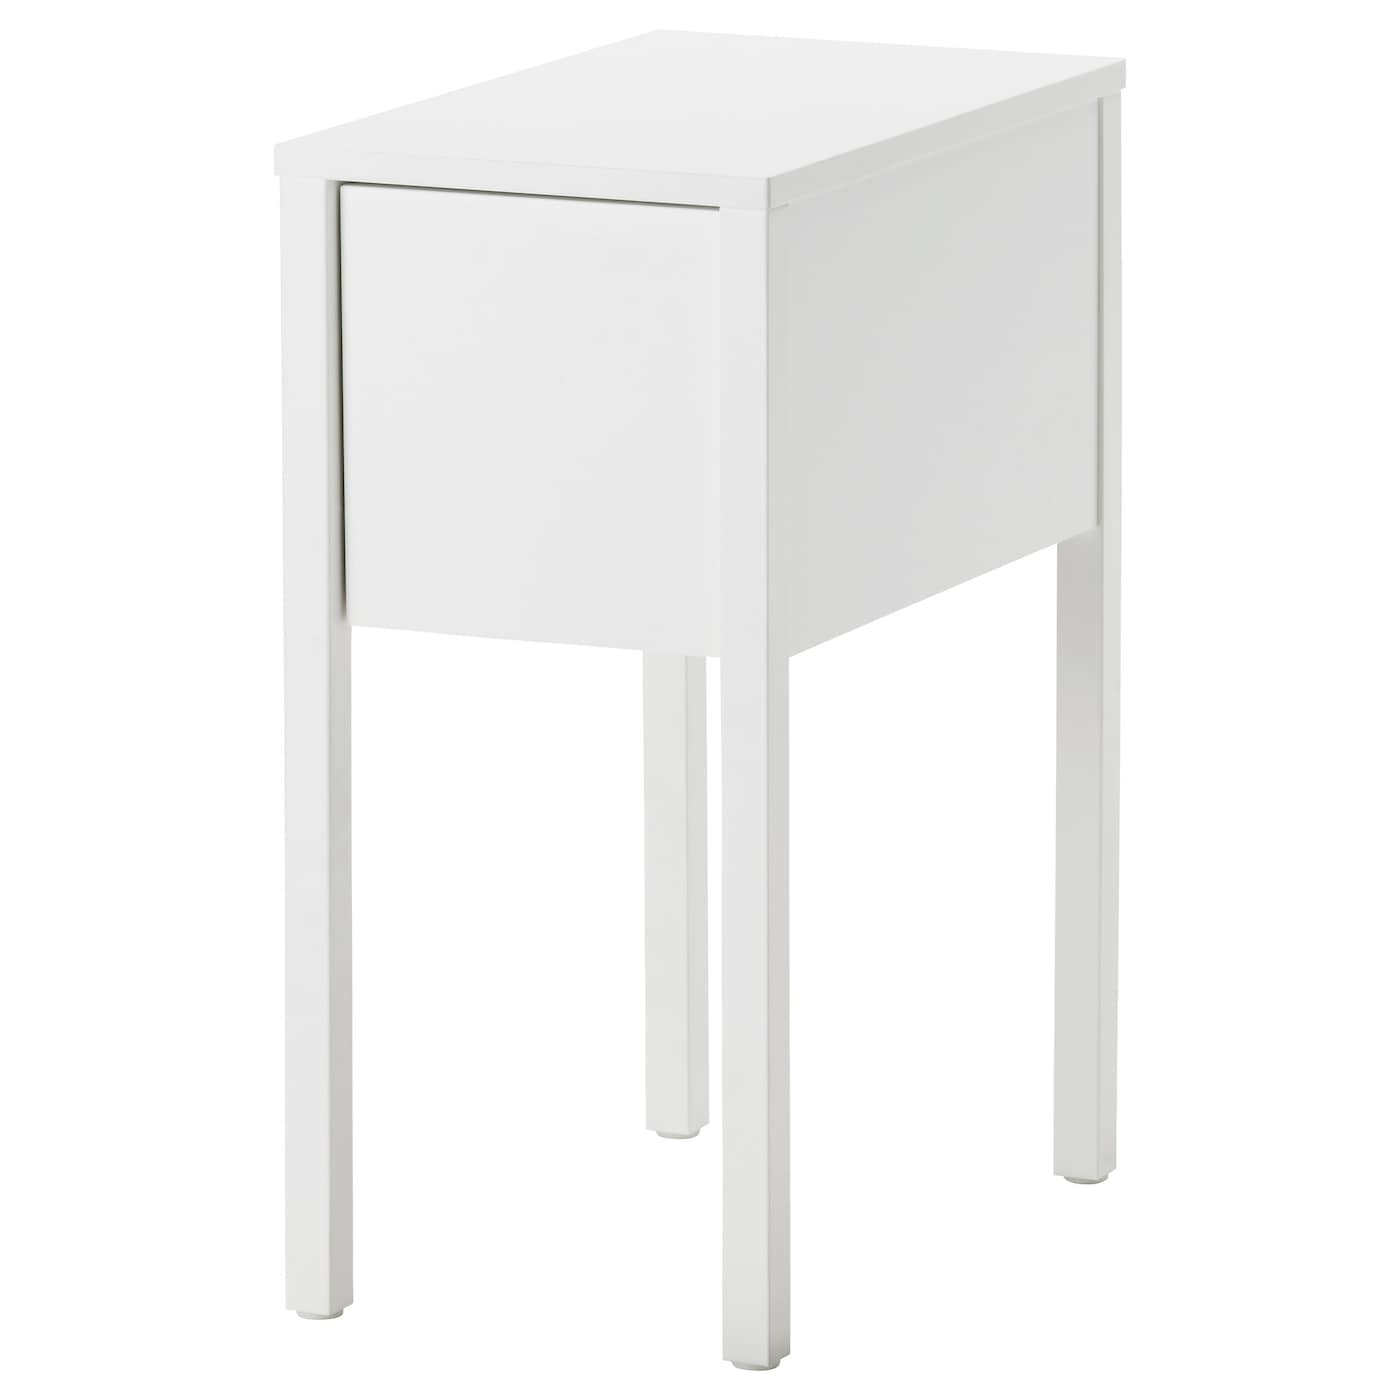 Ikea Nordli Bedside Table On The Hidden Shelf Is Room For An Extension Socket Your